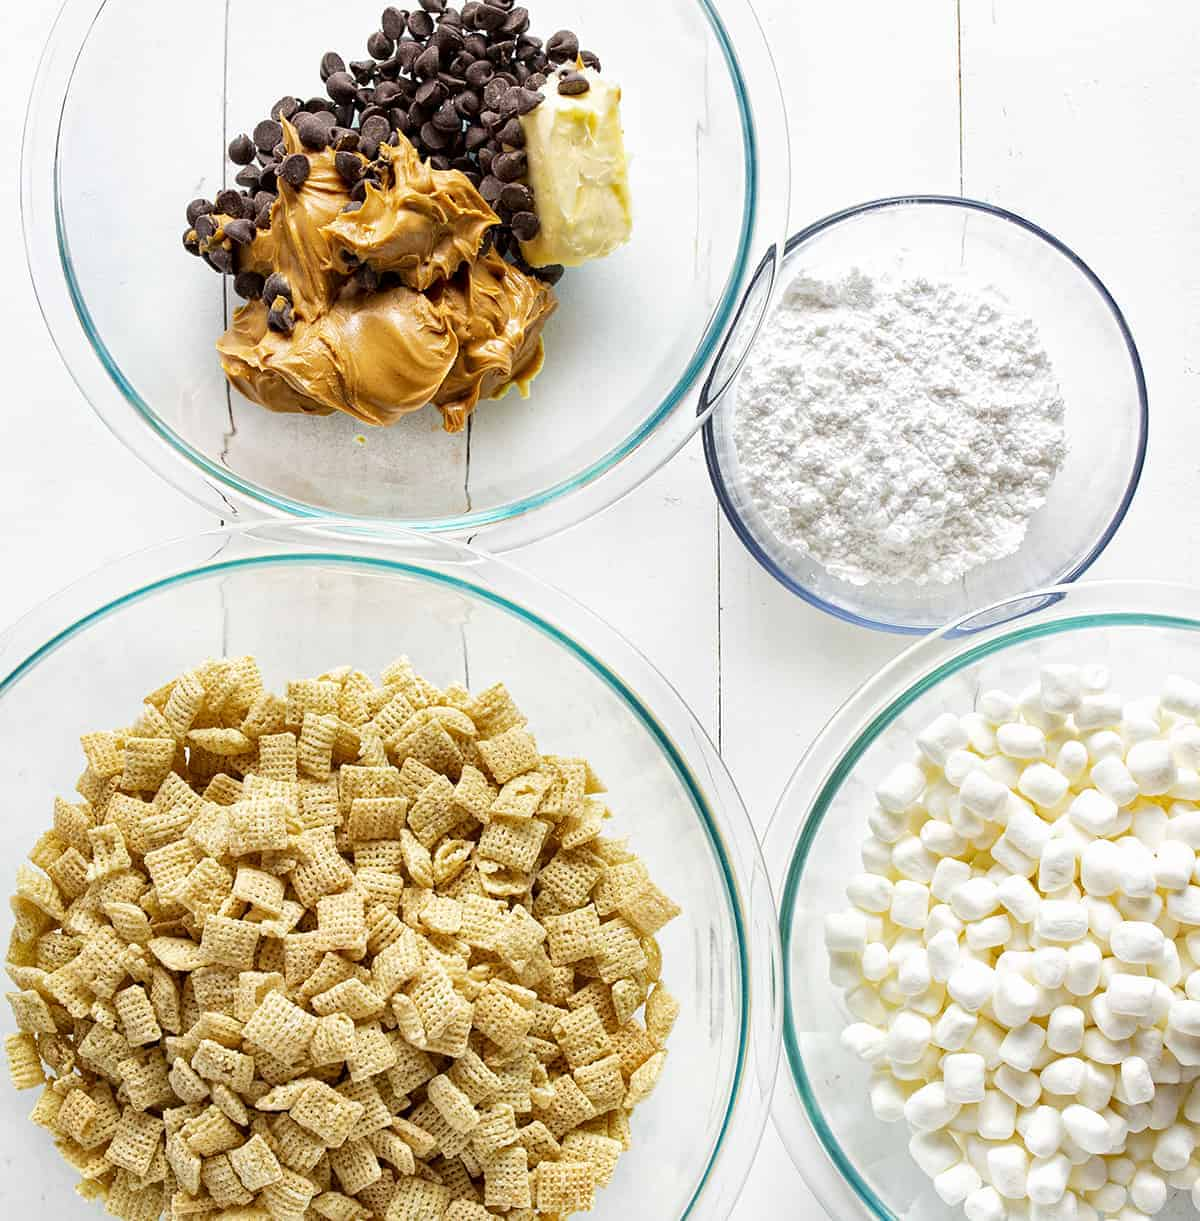 Ingredients for Puppy Chow Bars